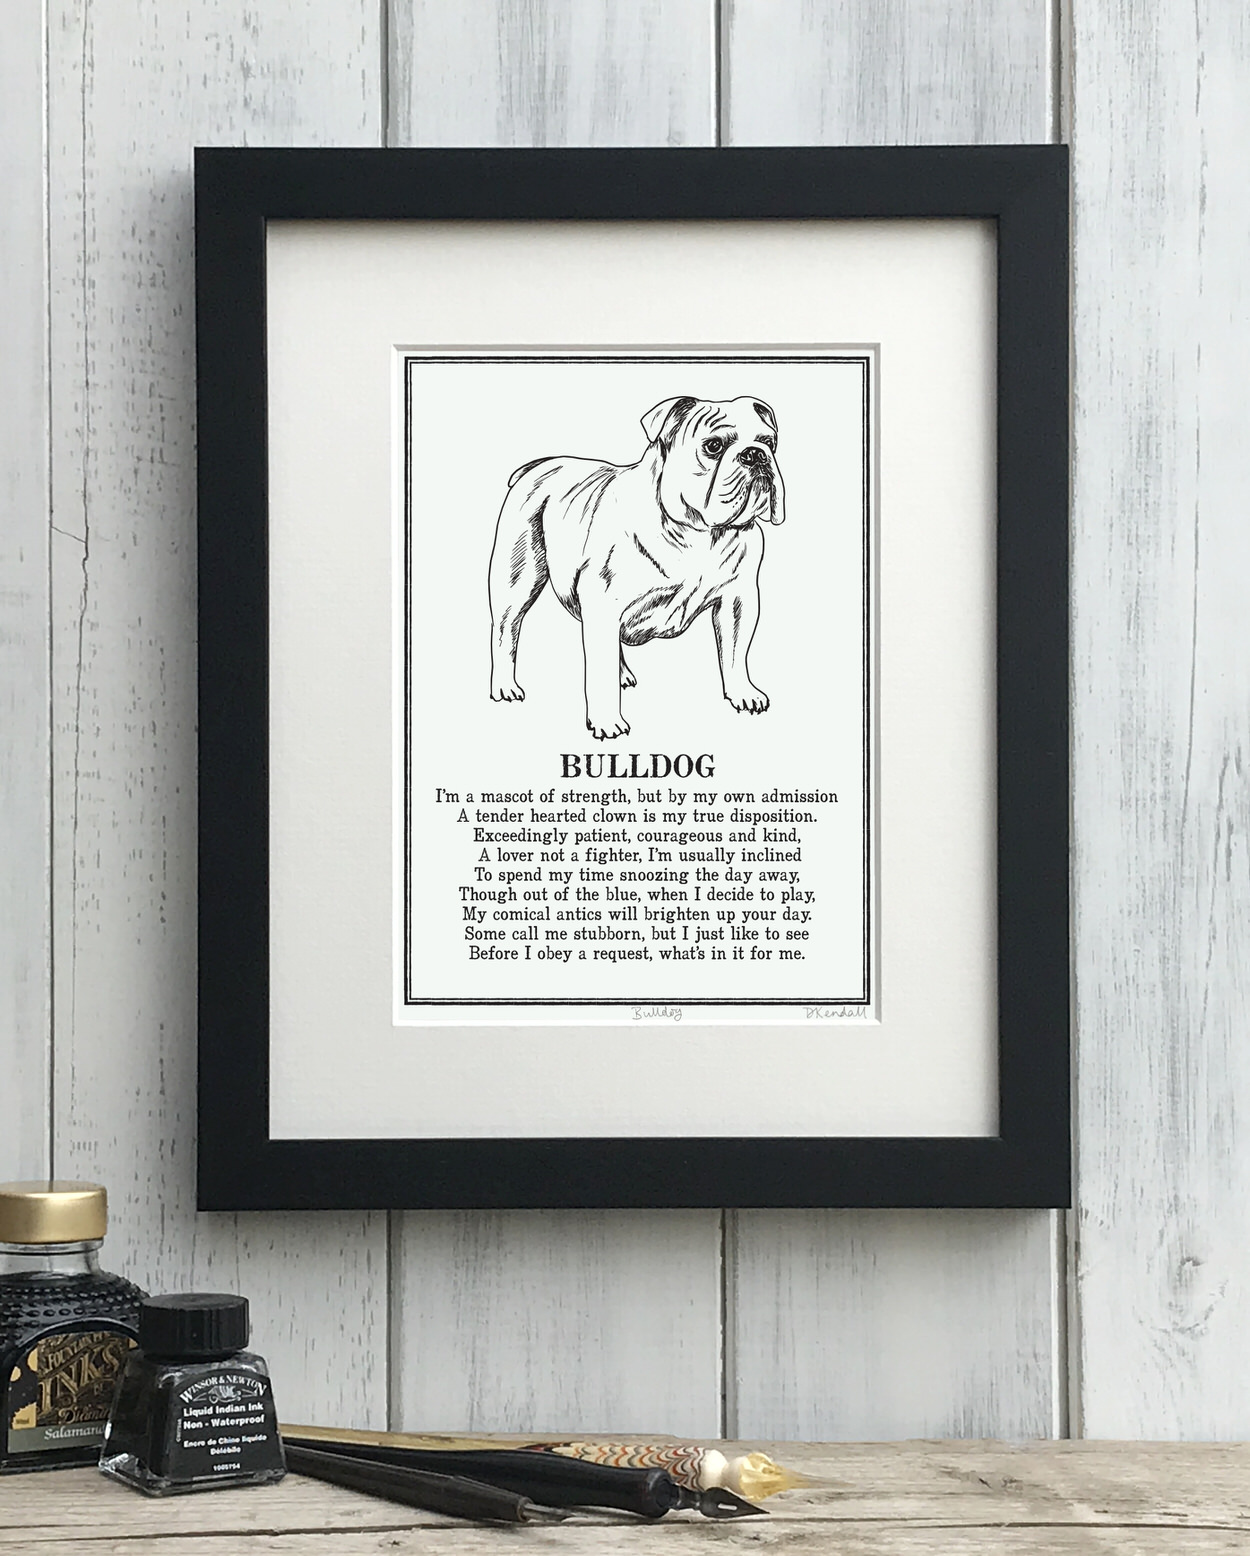 Bulldog print illustrated poem by The Enlightened Hound